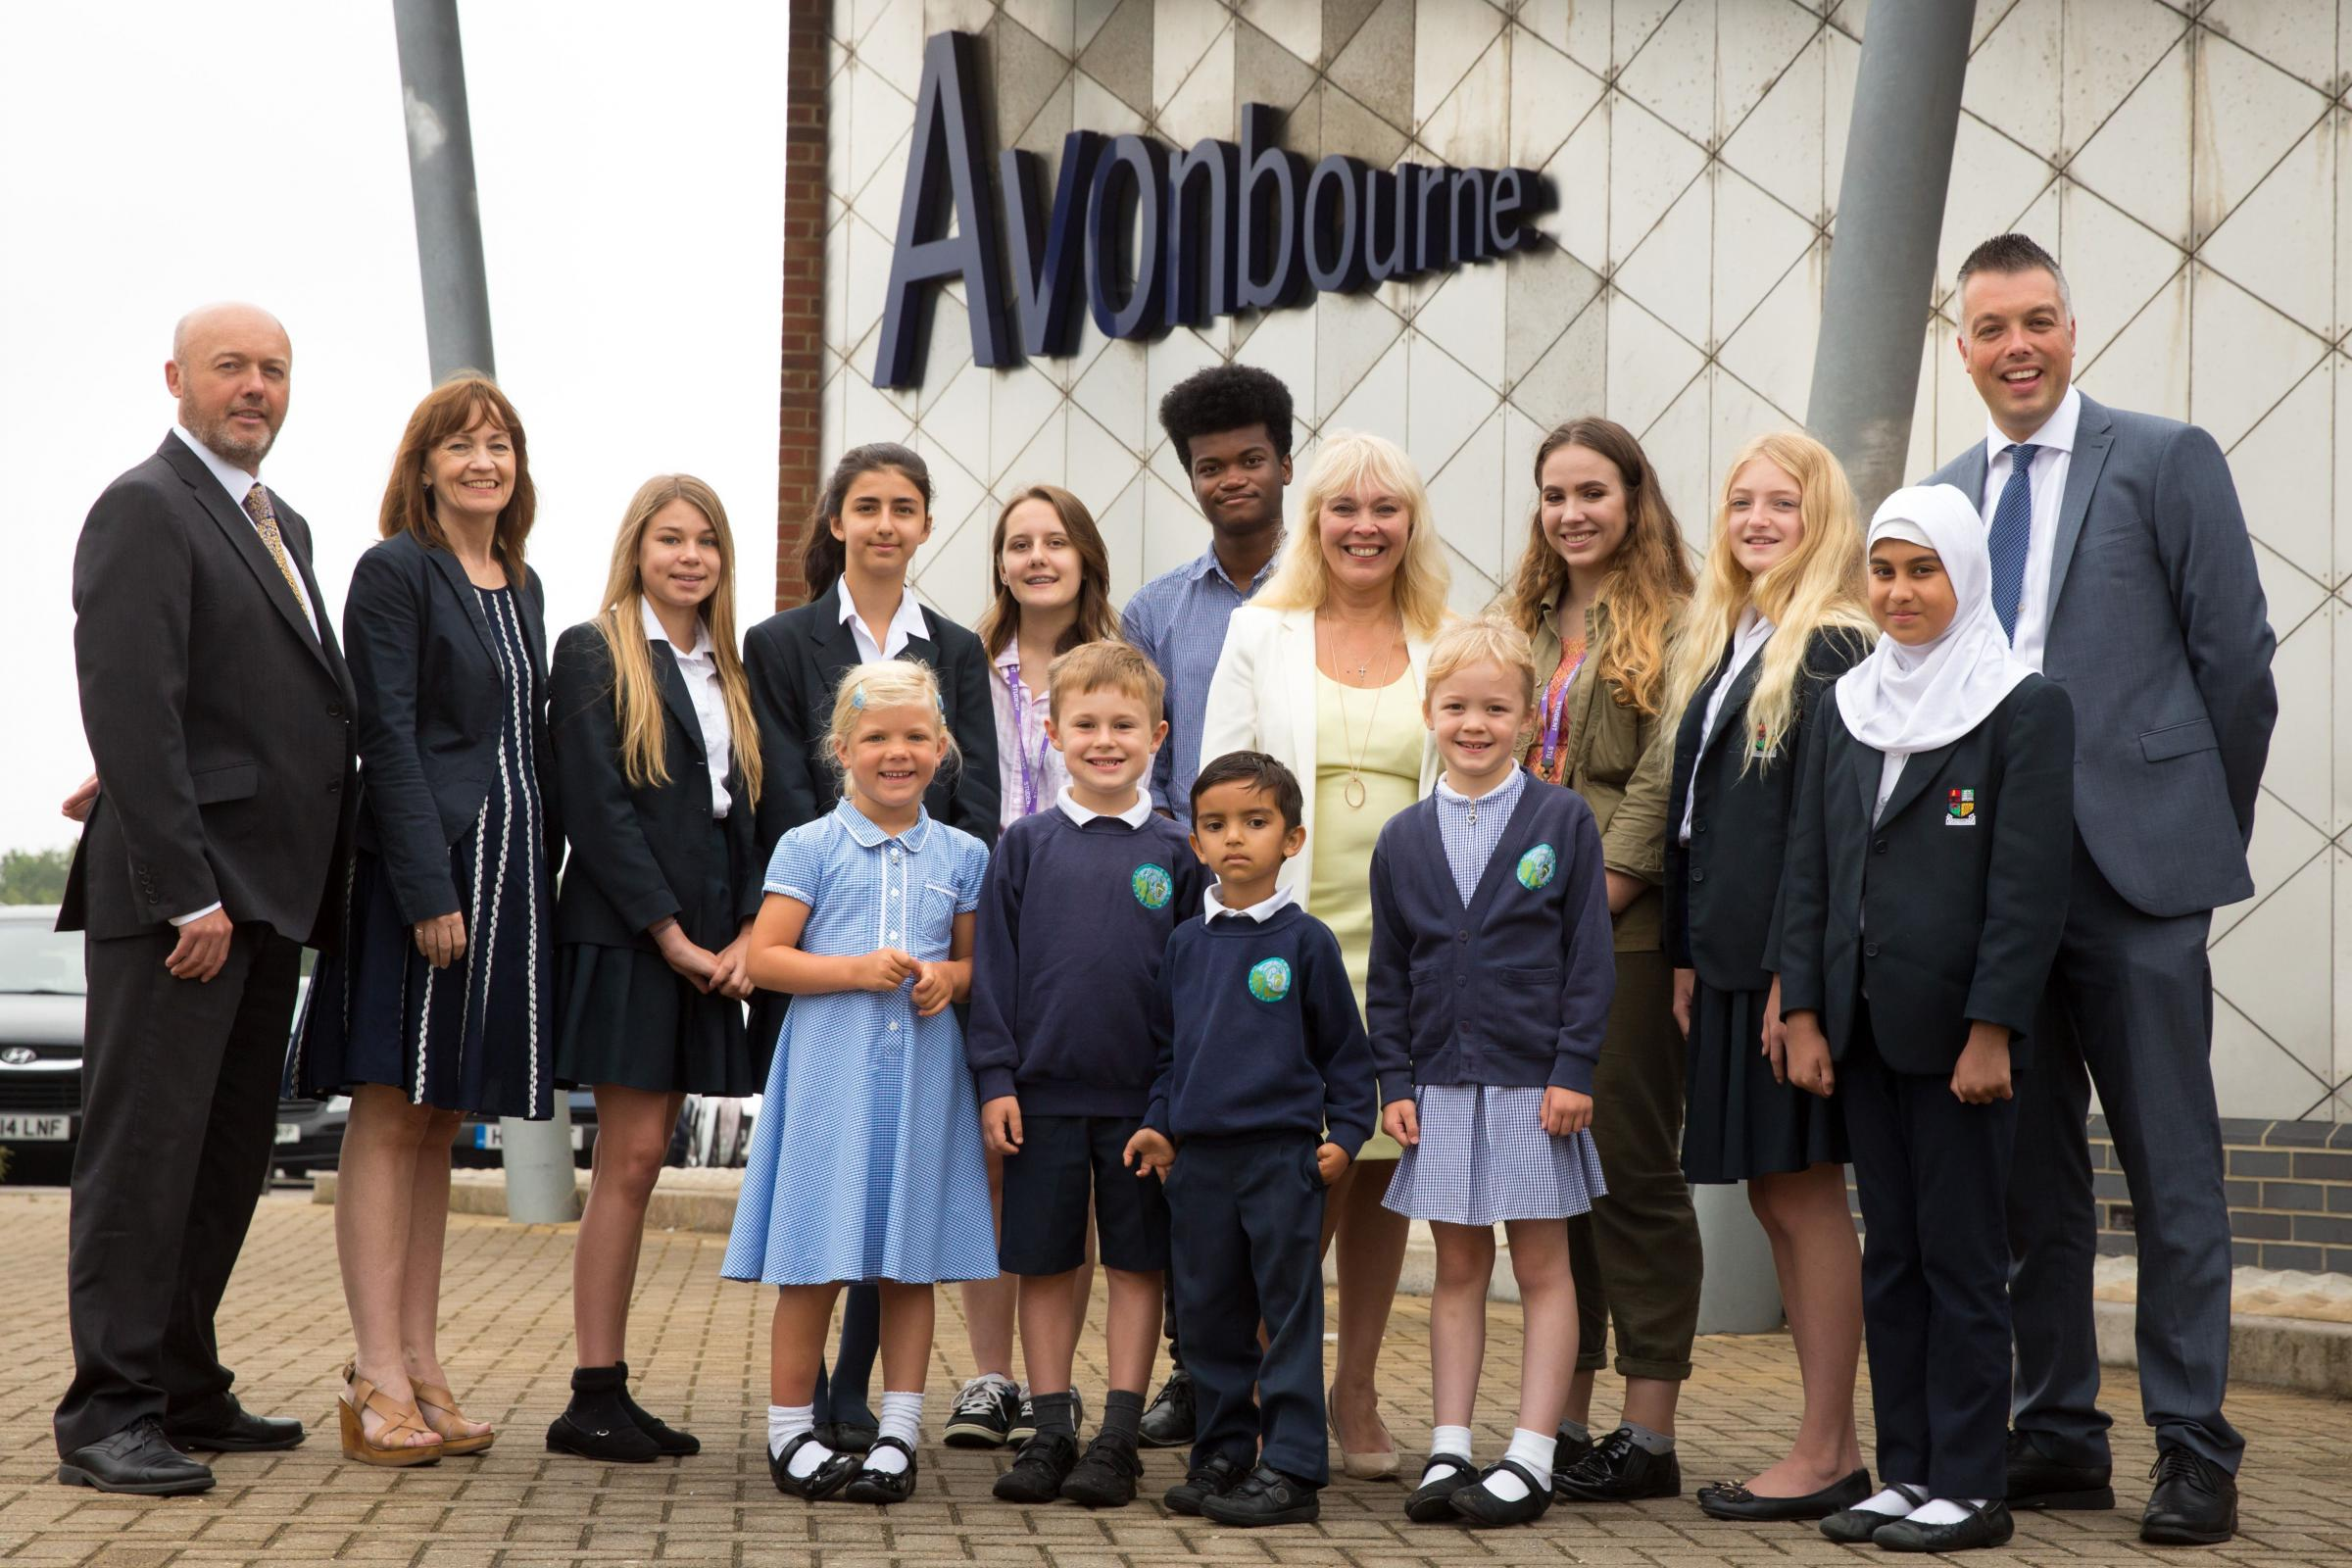 Pupils from Avonwood Primary, Avonbourne College and Avonbourne Sixth Form celebrate their Good Ofsted. Pictured with: Far left Principal of Avonbourne College, Jason Holbrook; Director of Sixth Form, Kathryn Loughnan (second left); CEO of Avonbourne Trus